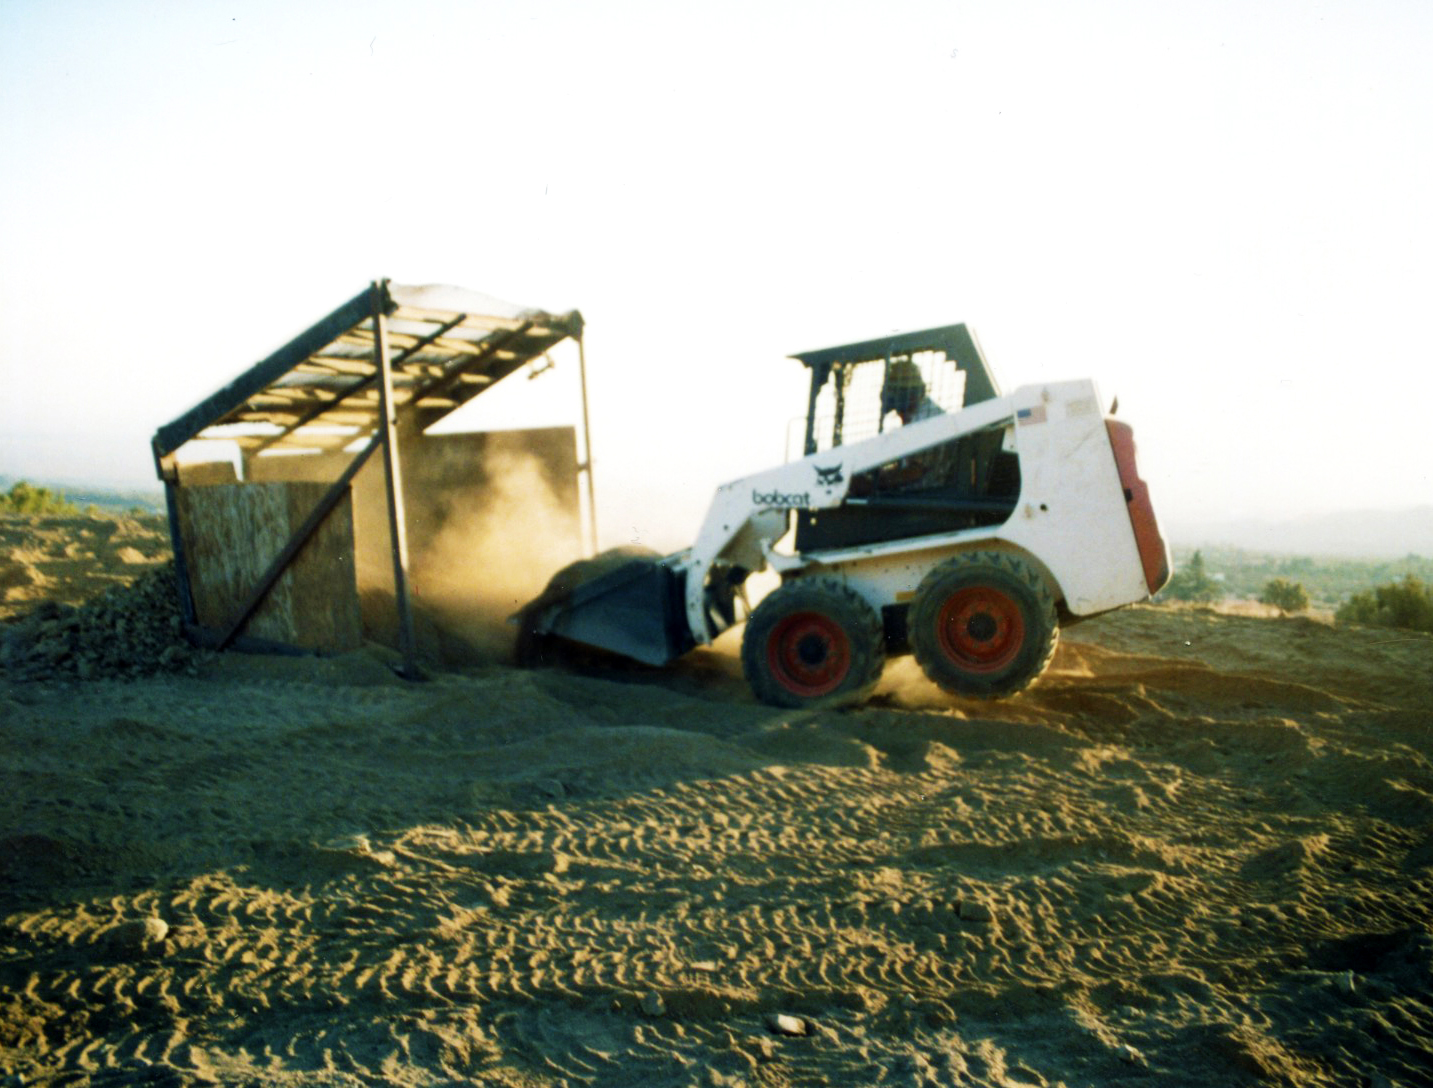 Bobcat wheelie while screening the dirt.